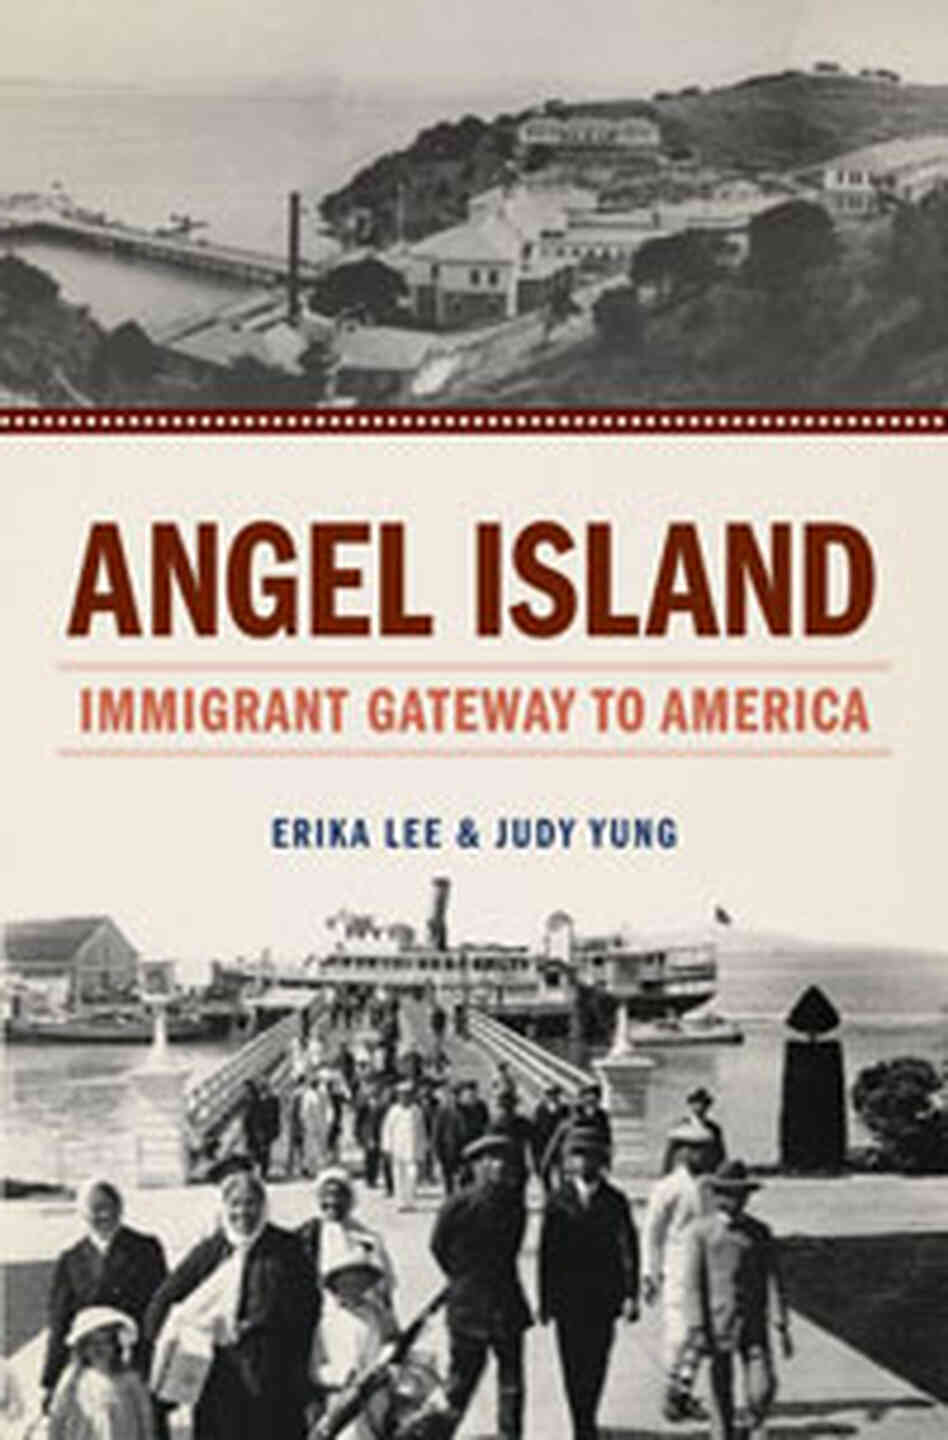 The history of the ellis island as the gateway to america